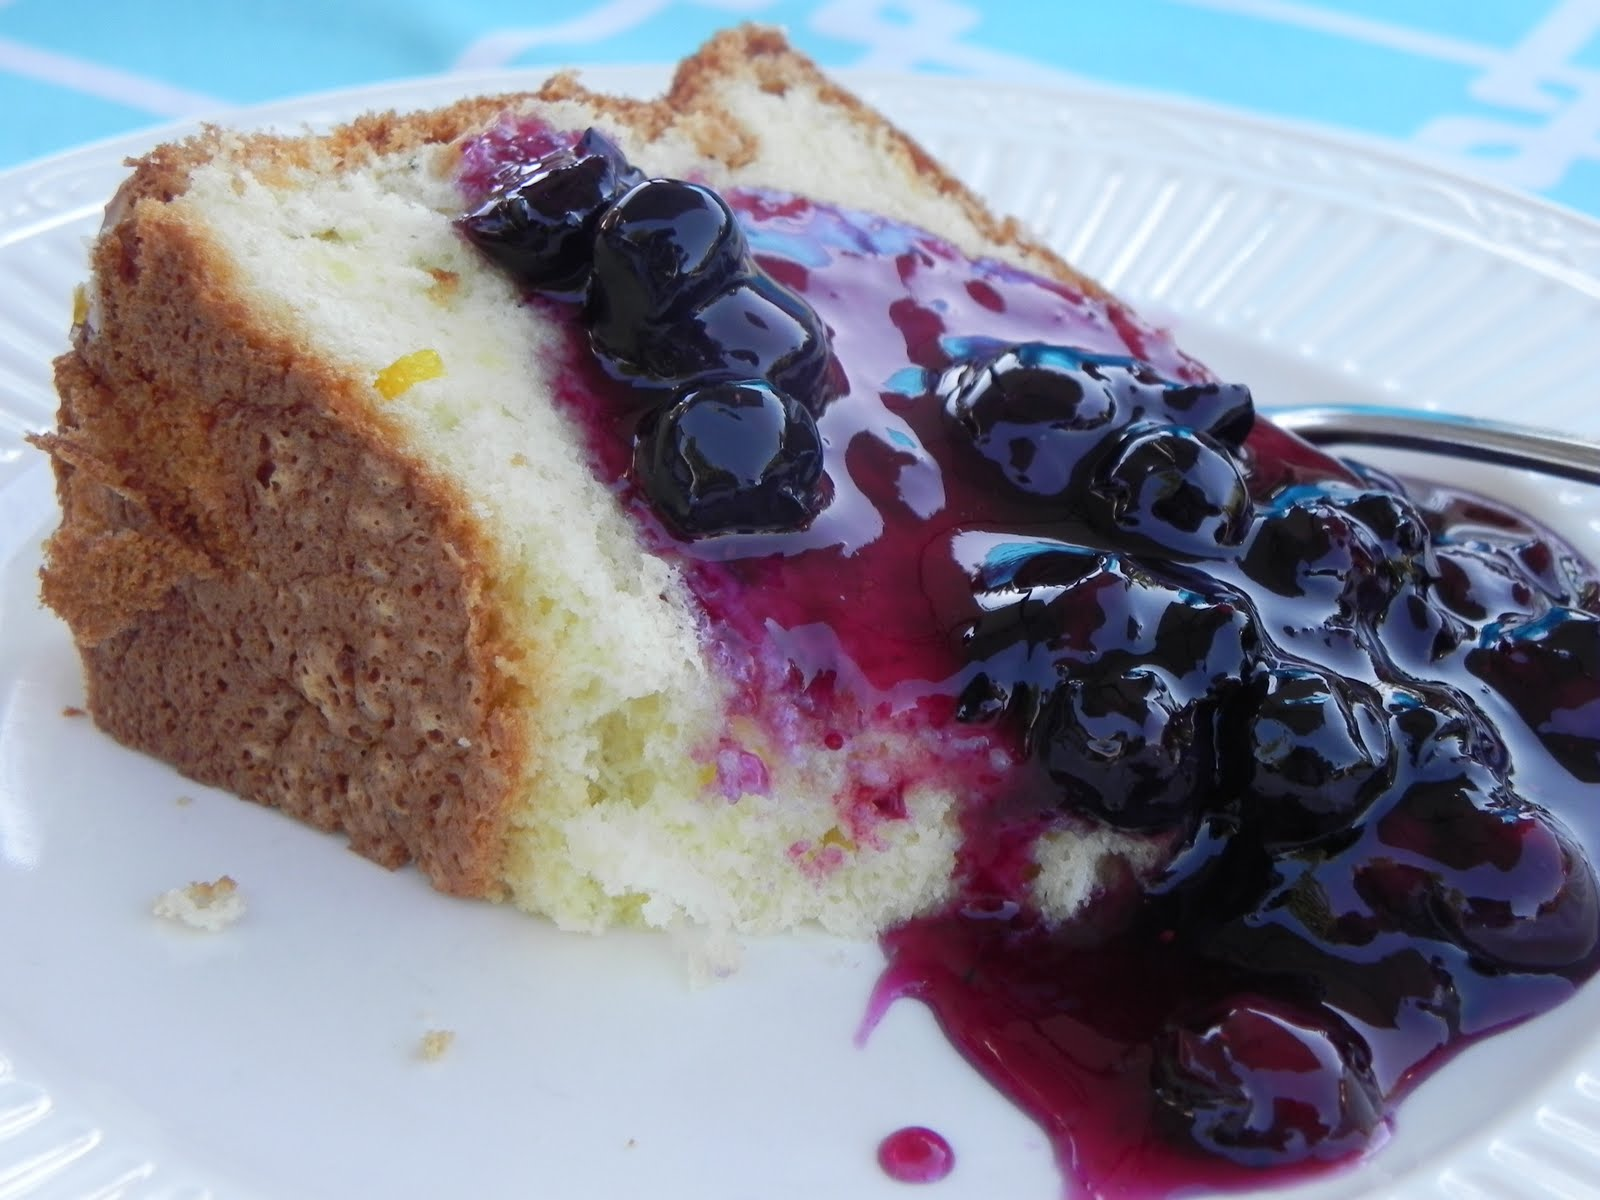 Chinese Angel Food Cake With Tart Lemon Glaze And A Warm Blueberry Sauce